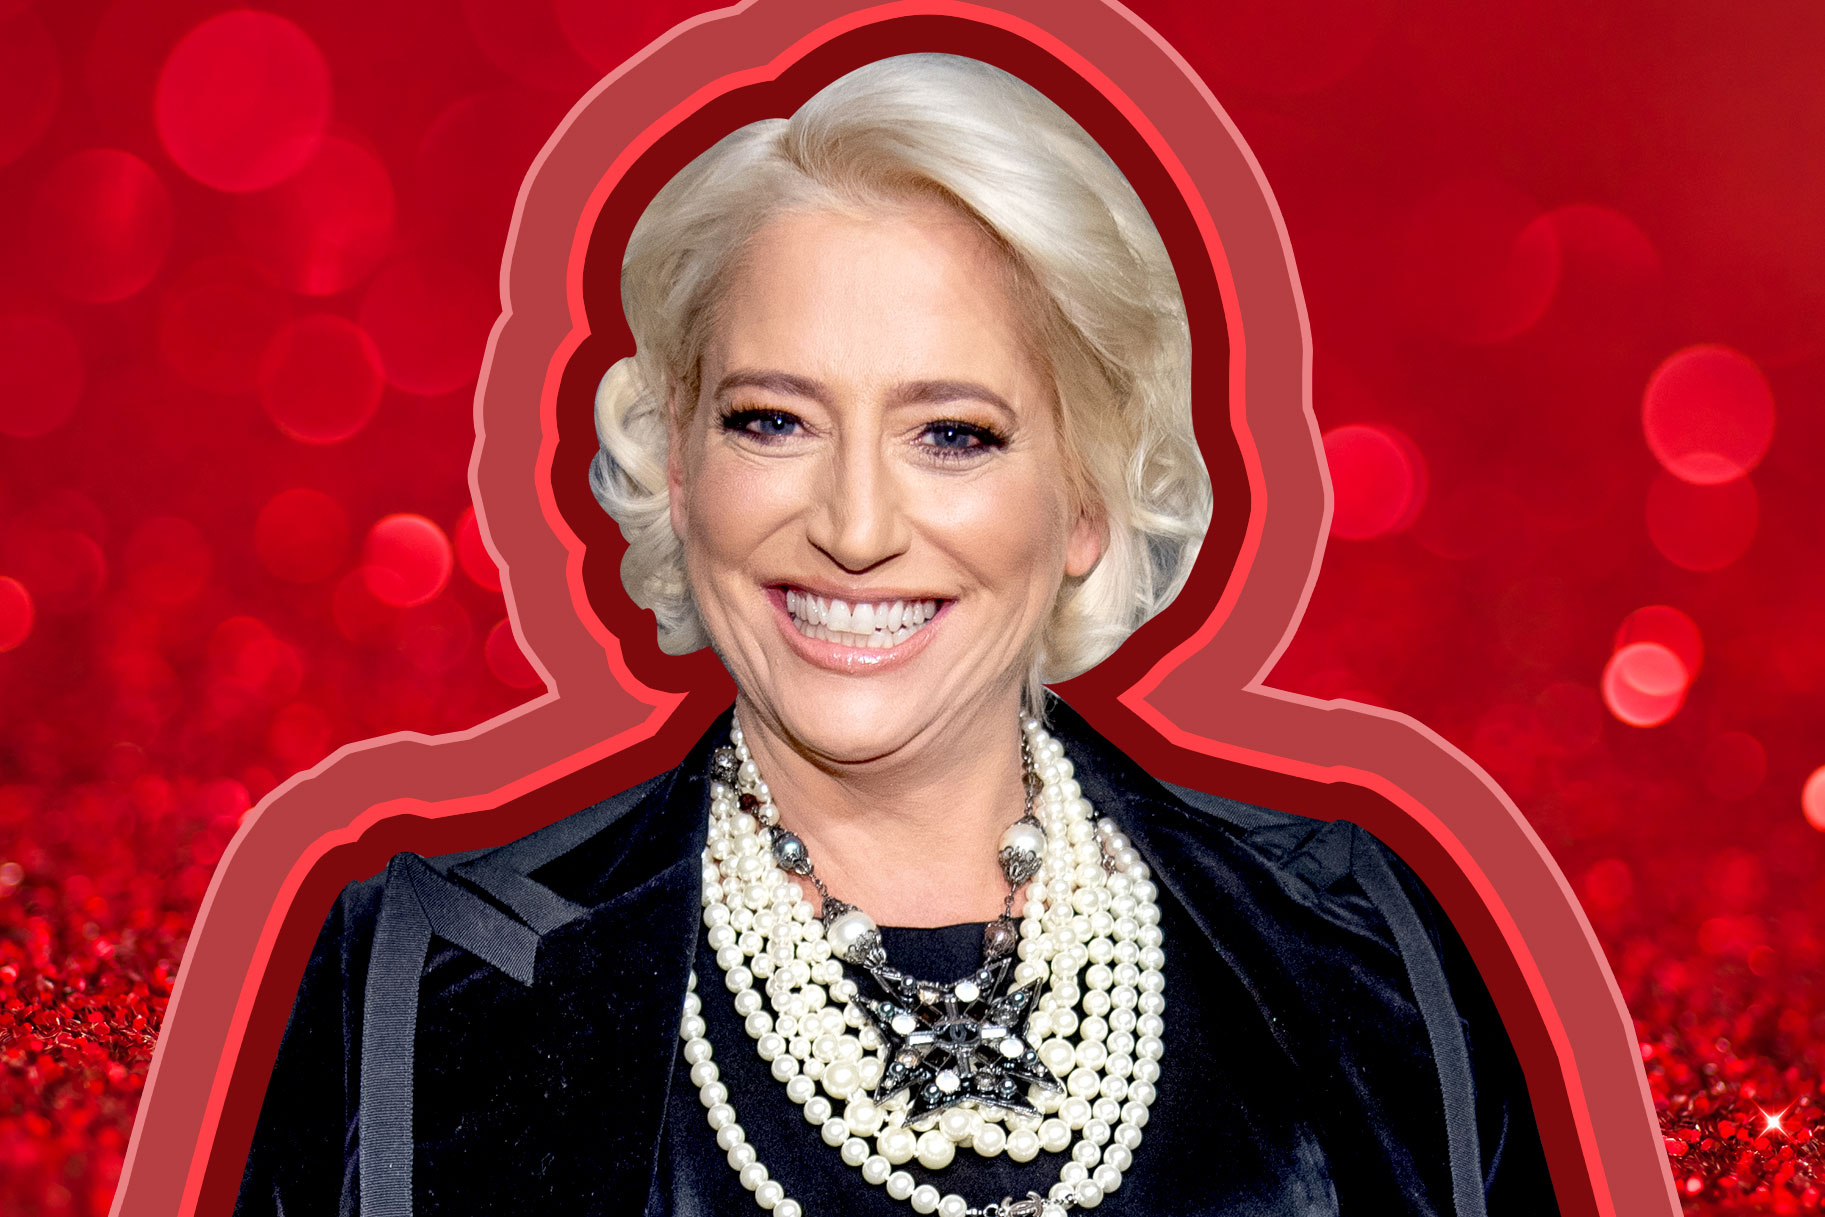 Dorinda Medley The Real Housewives Of New York City